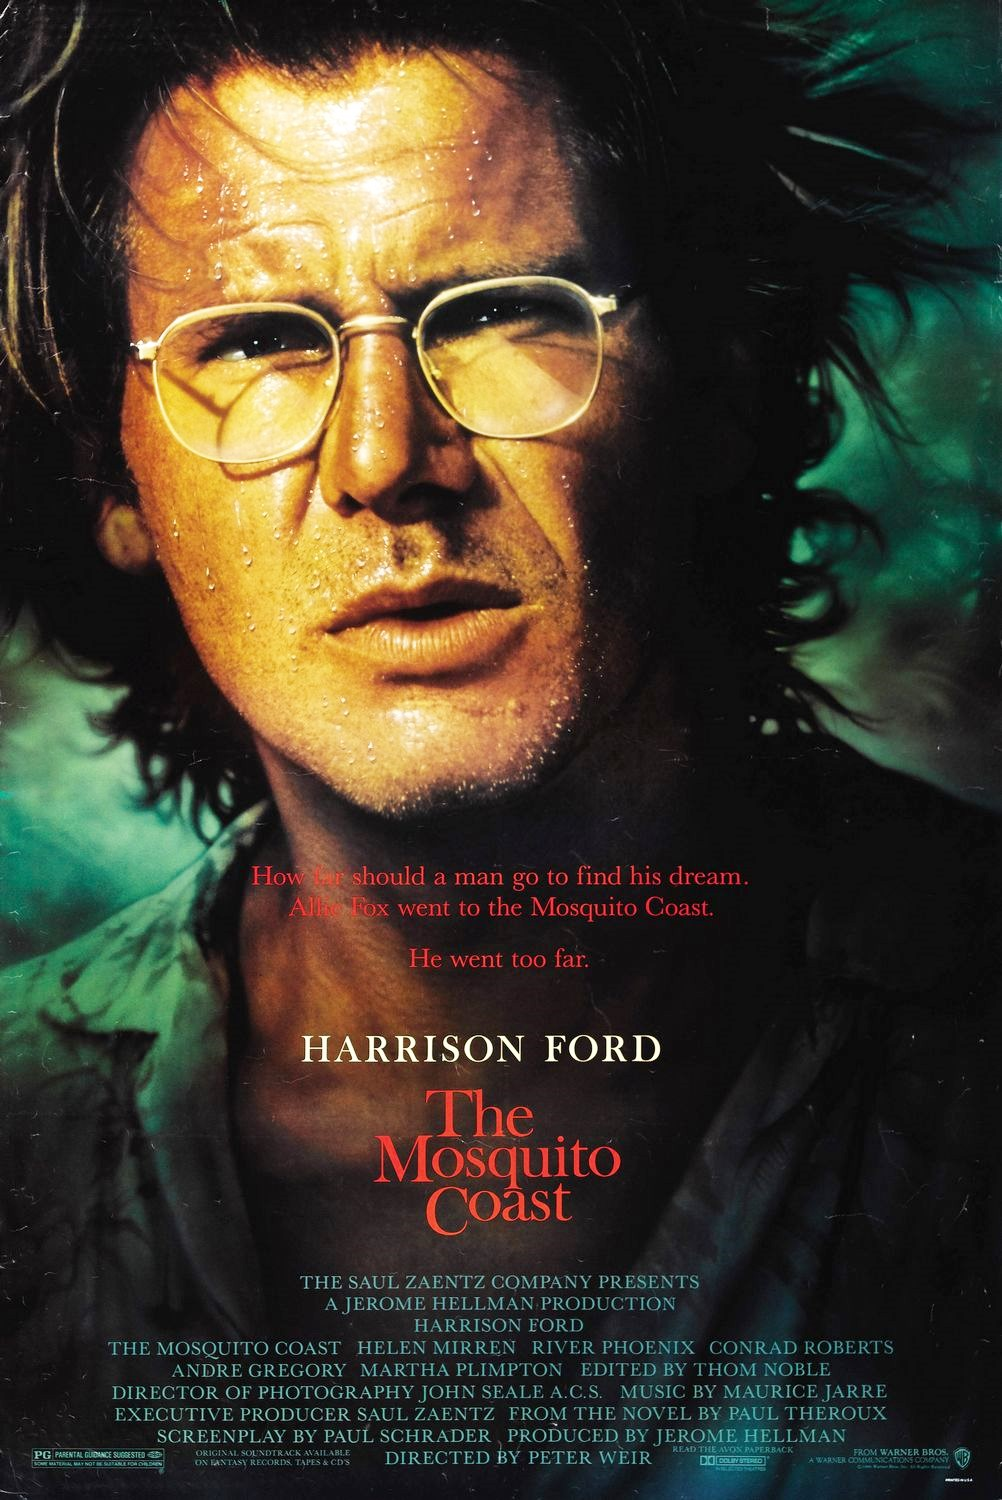 The Mosquito Coast (1986) - Starring Harrison Ford, an inventor spurns his city life to move his family into the jungles of Central America to make a utopia.